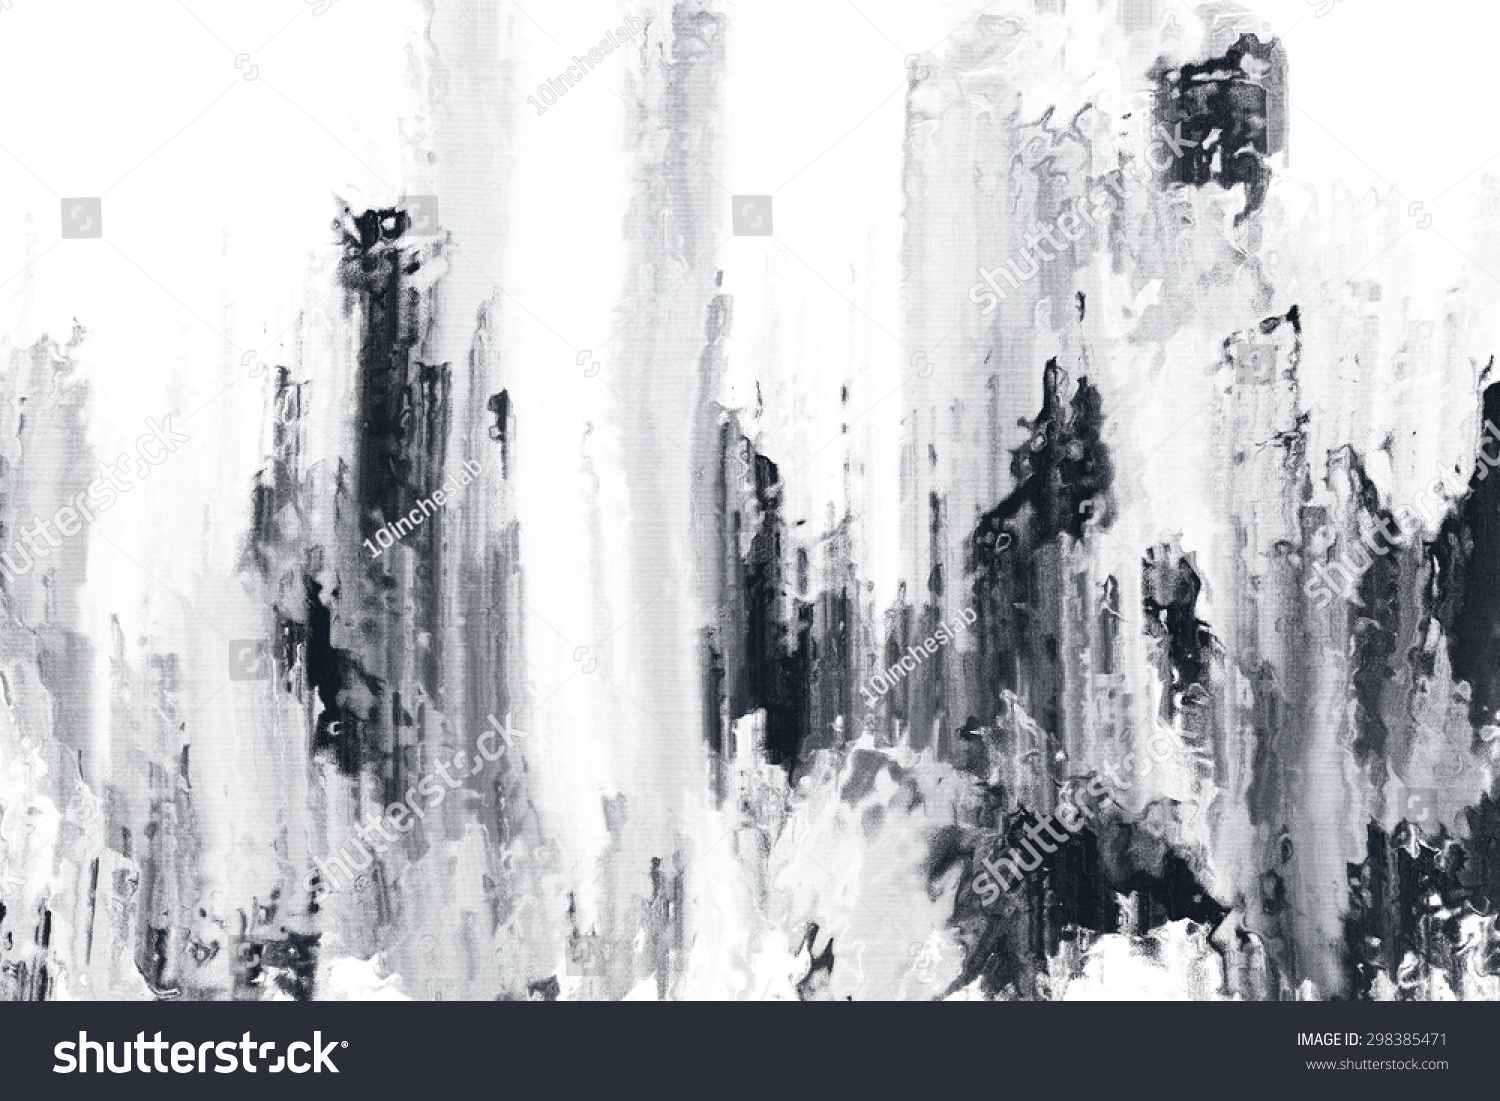 Abstract Black And White Brush Stroke Painting Texture